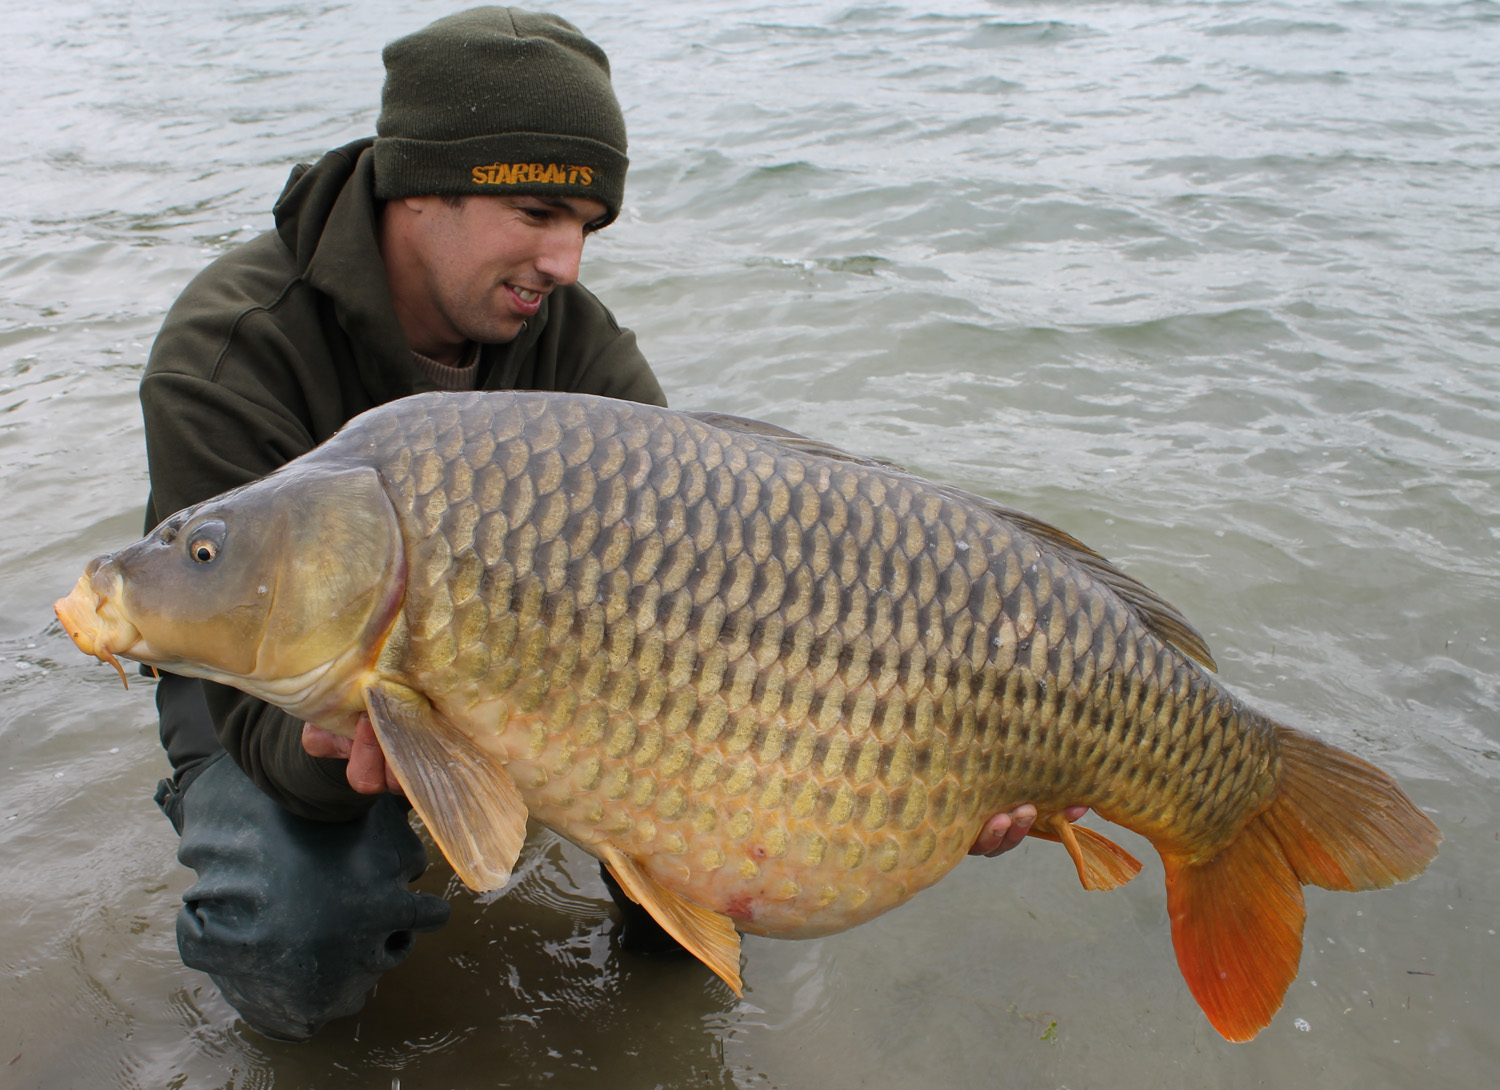 http://www.starbaits.com/fichiers/images/team/gallery/DUCERE_Cedric/12-DUCERE-CEDRIC.JPG